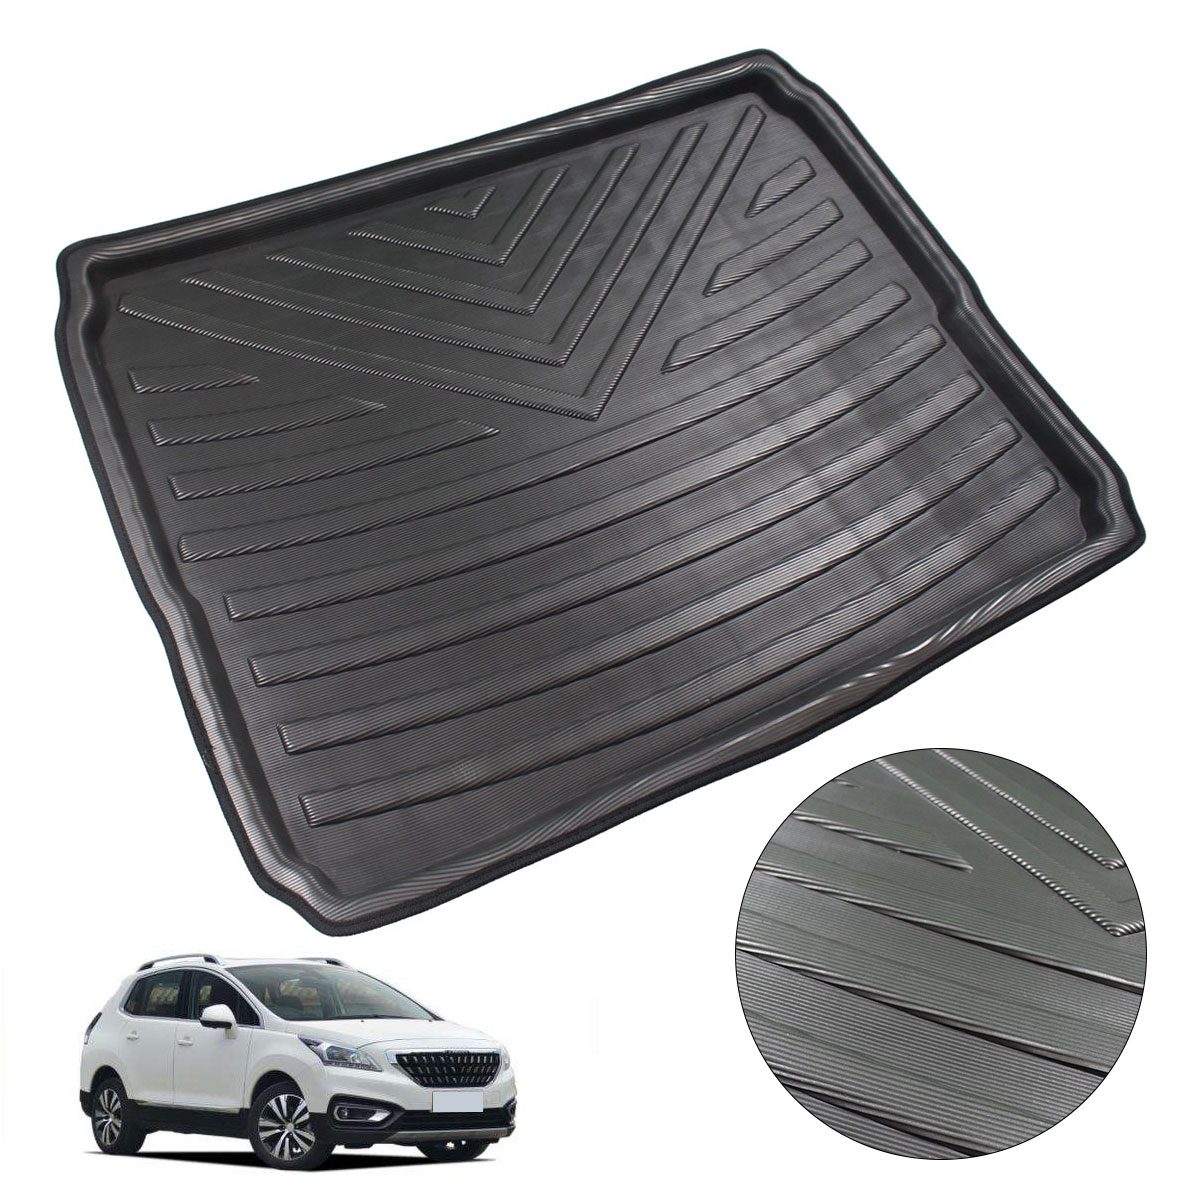 Car Interior Cargo Liner Boot Tray Rear Trunk Cover Matt Mat Floor Carpet Kick Pad For Peugeot 3008 2017 2018